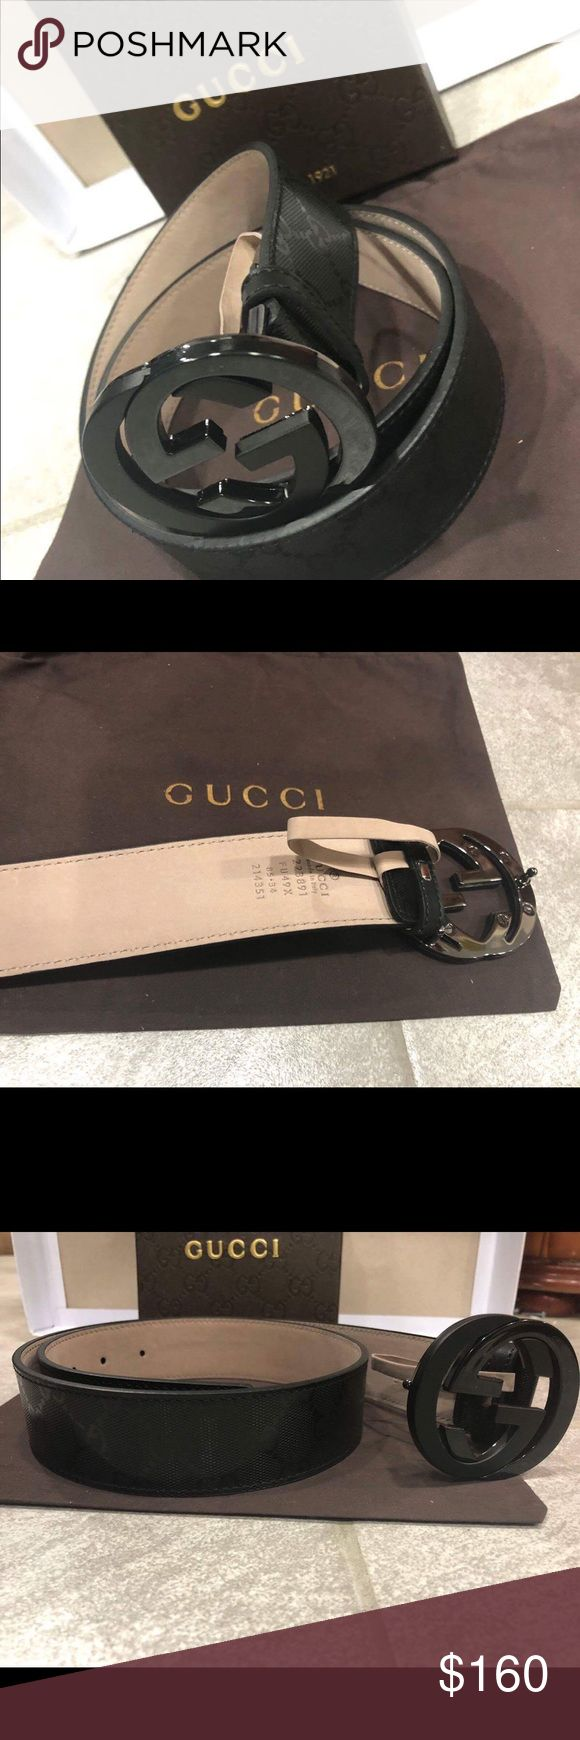 Authentic Men's Black Gucci Belt Imprime Shiny 100% Authentic Mens Gucci Belt  Sizing made easy! Just choose the size u wear in pants.   Comes with box, dust bag and tags!!  From a smoke and pet free home!! Gucci Accessories Belts